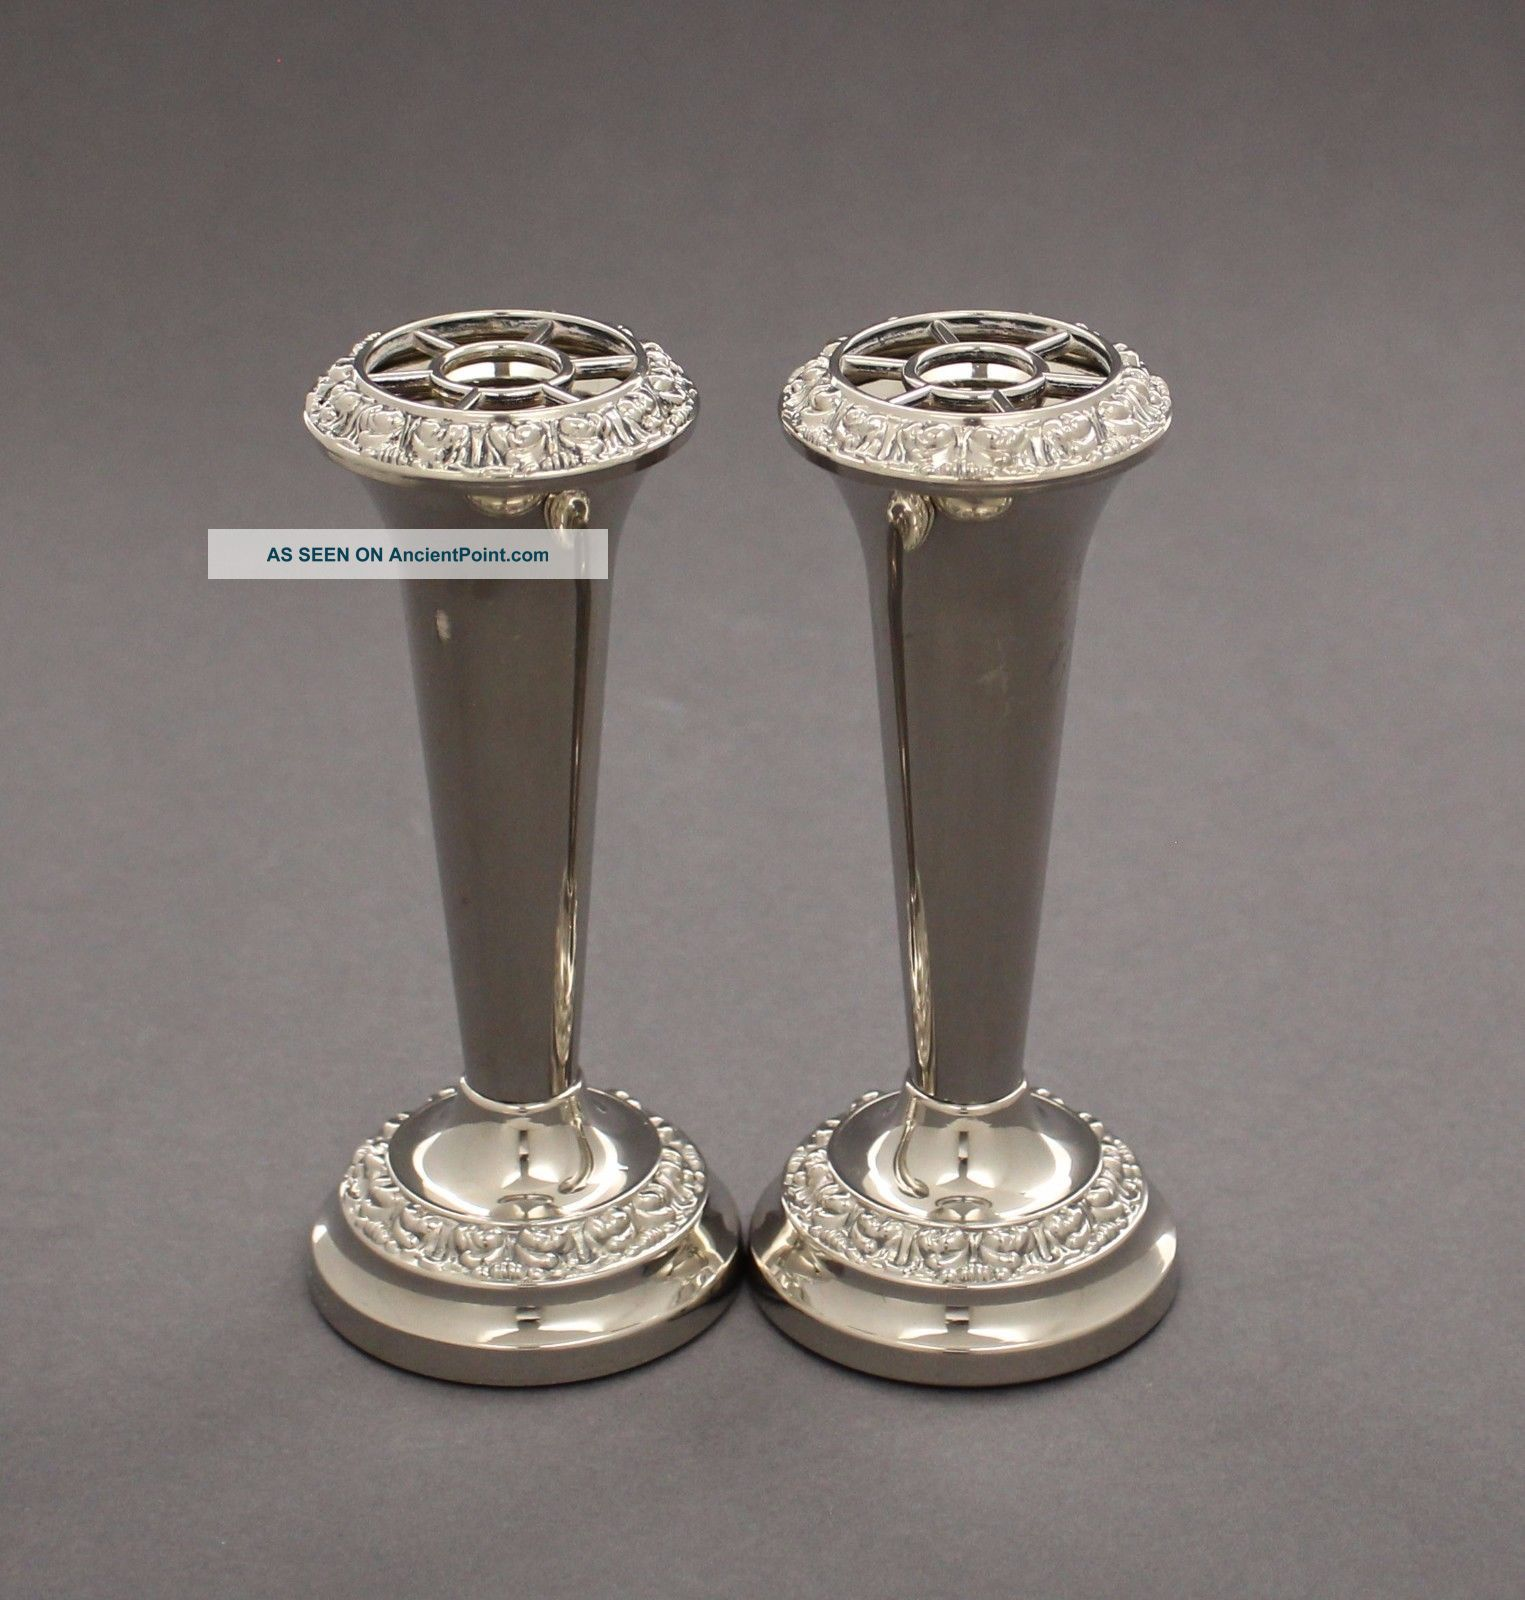 Vintage Silver Plate Pair 2 Trumpet Bud Vases Ianthe Floral Shabby Chic Retro Vases & Urns photo